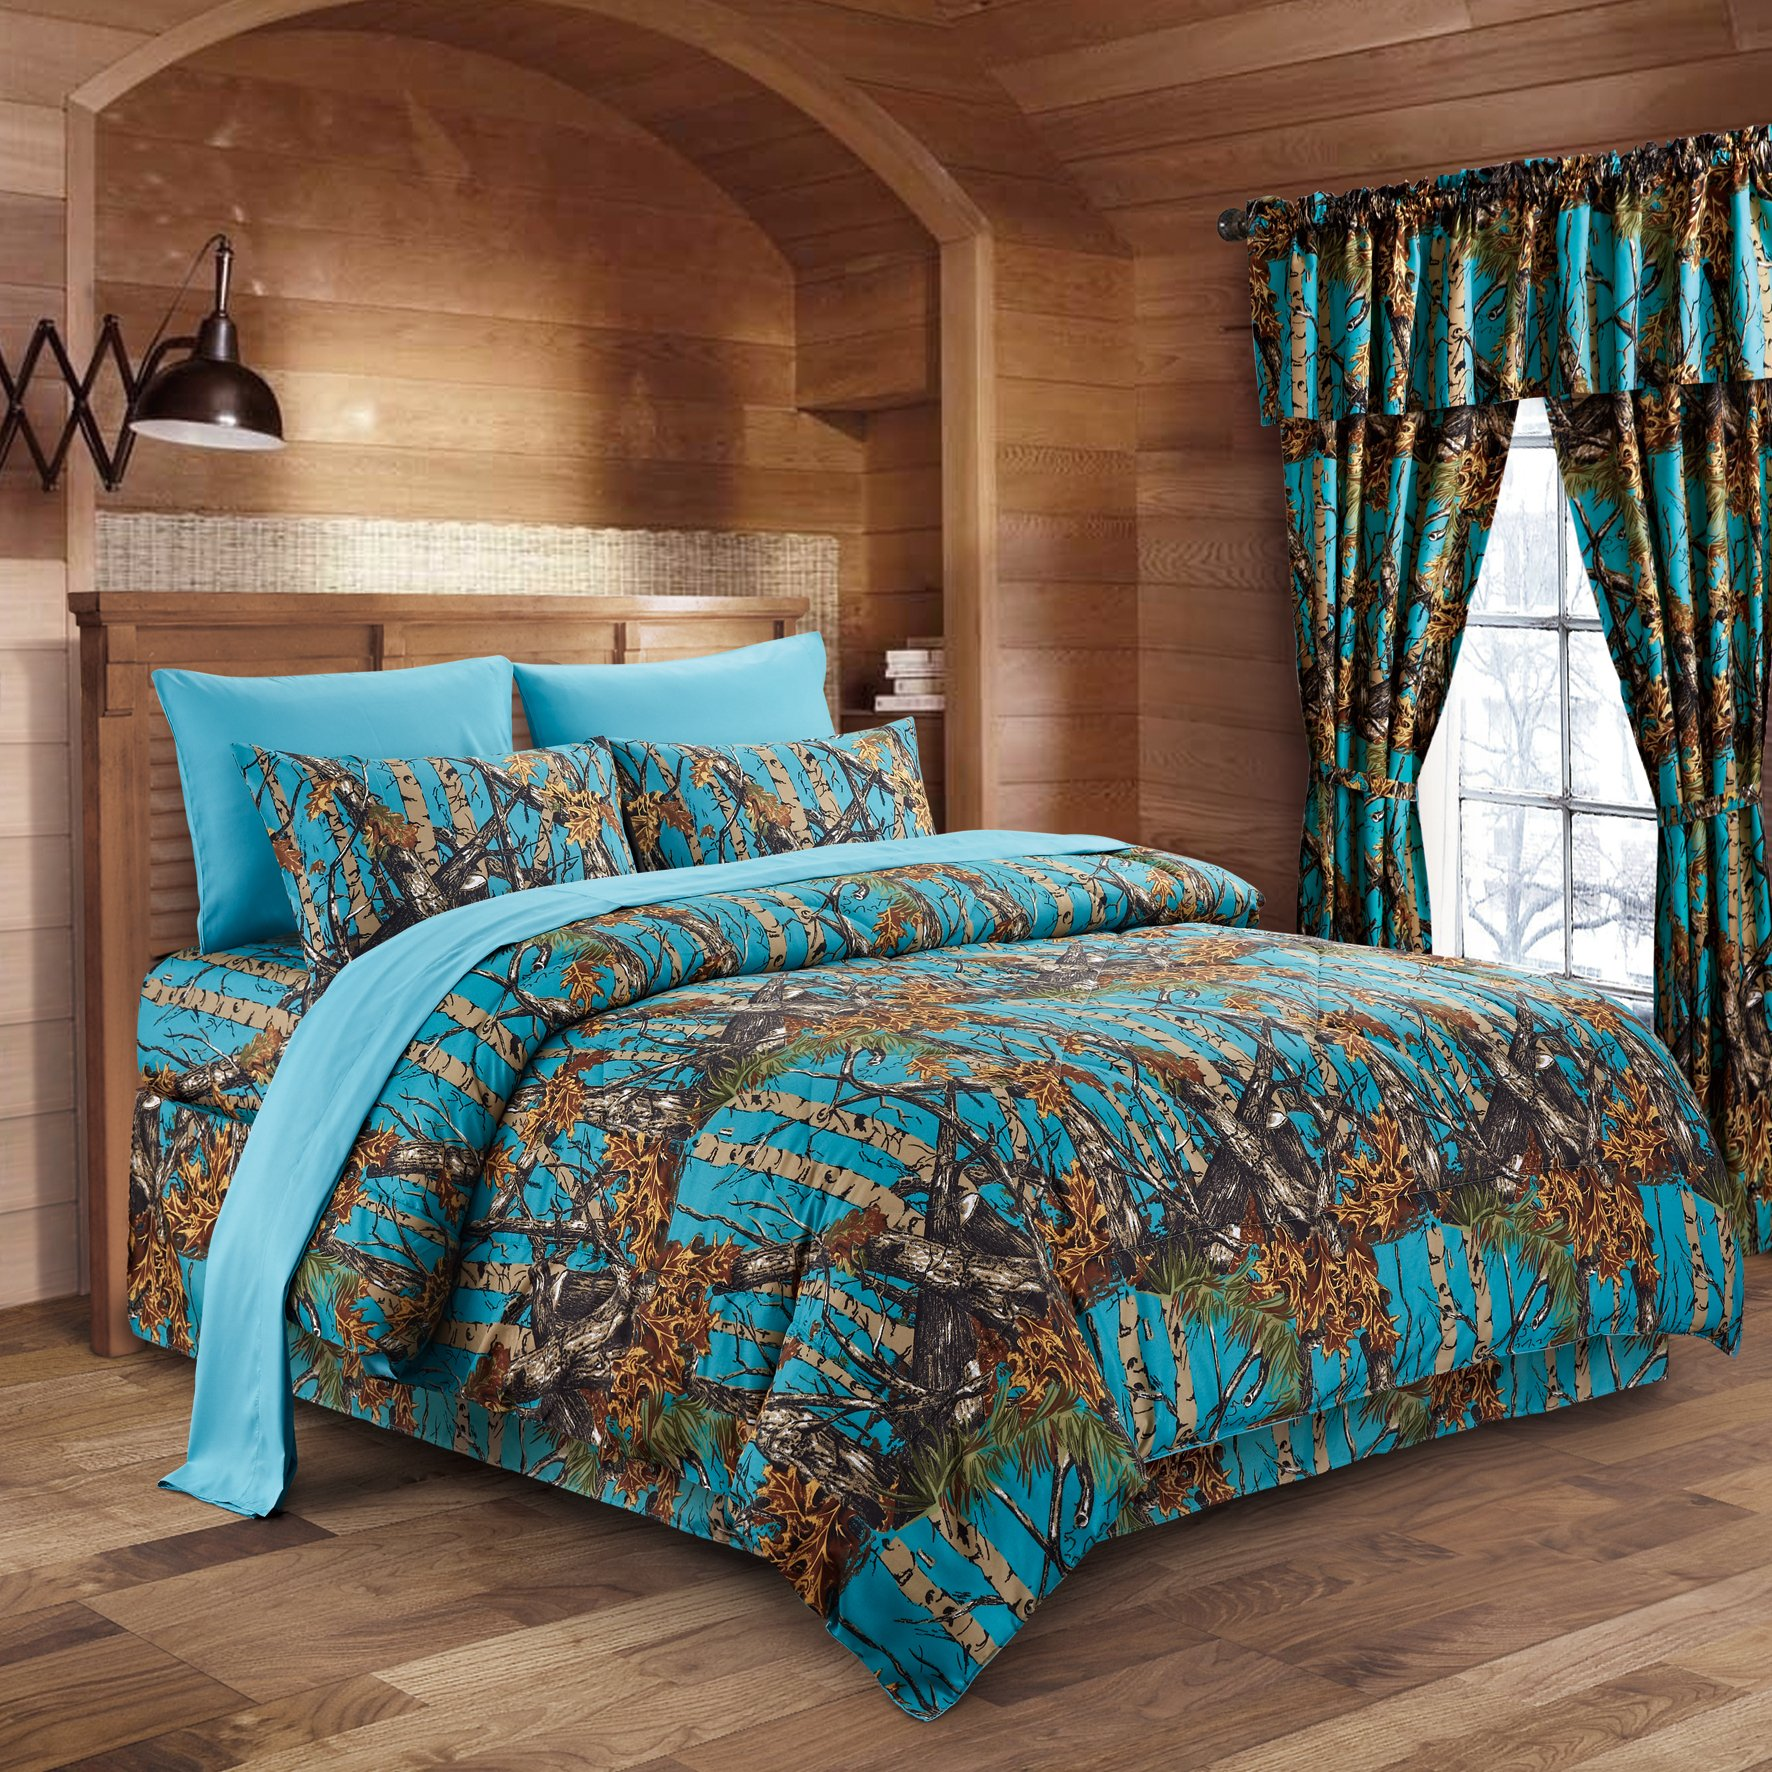 The Woods Sea Breeze Camouflage Twin 5pc Premium Luxury Comforter, Sheet, Pillowcases, and Bed Skirt Set by Regal Comfort Camo Bedding Set For Hunters Cabin or Rustic Lodge Teens Boys and Girls by Regal Comfort (Image #1)